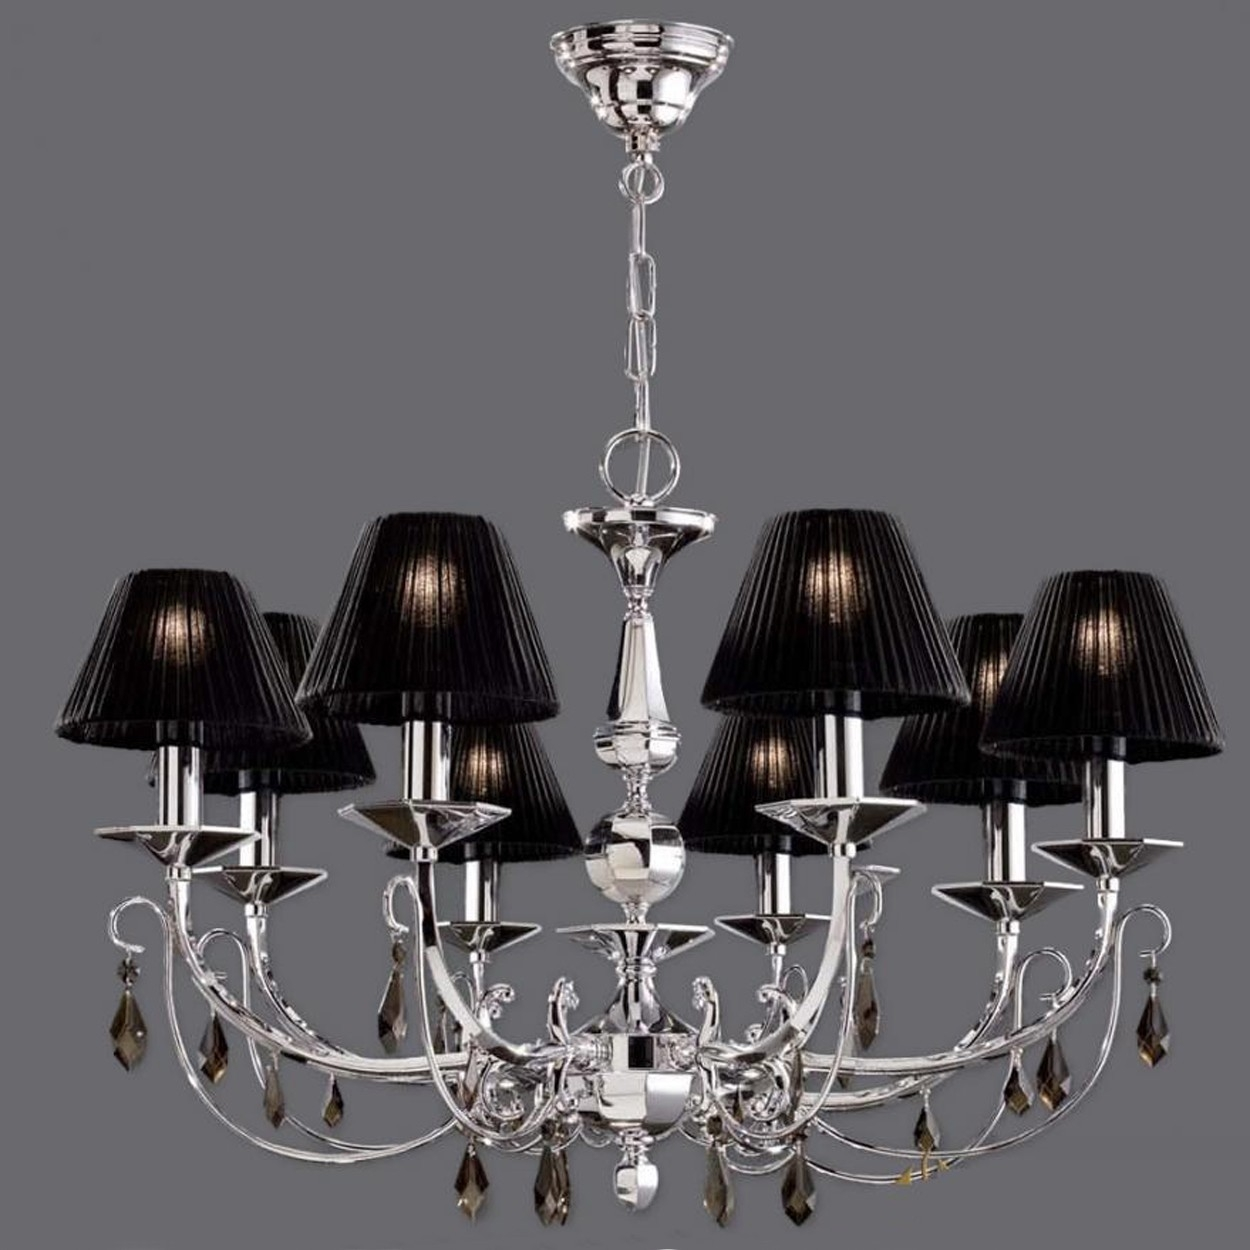 Outstanding Living Room Decor With Mini Chandelier Lamp Shades In Chandelier Lamp Shades Clip On (Image 22 of 25)